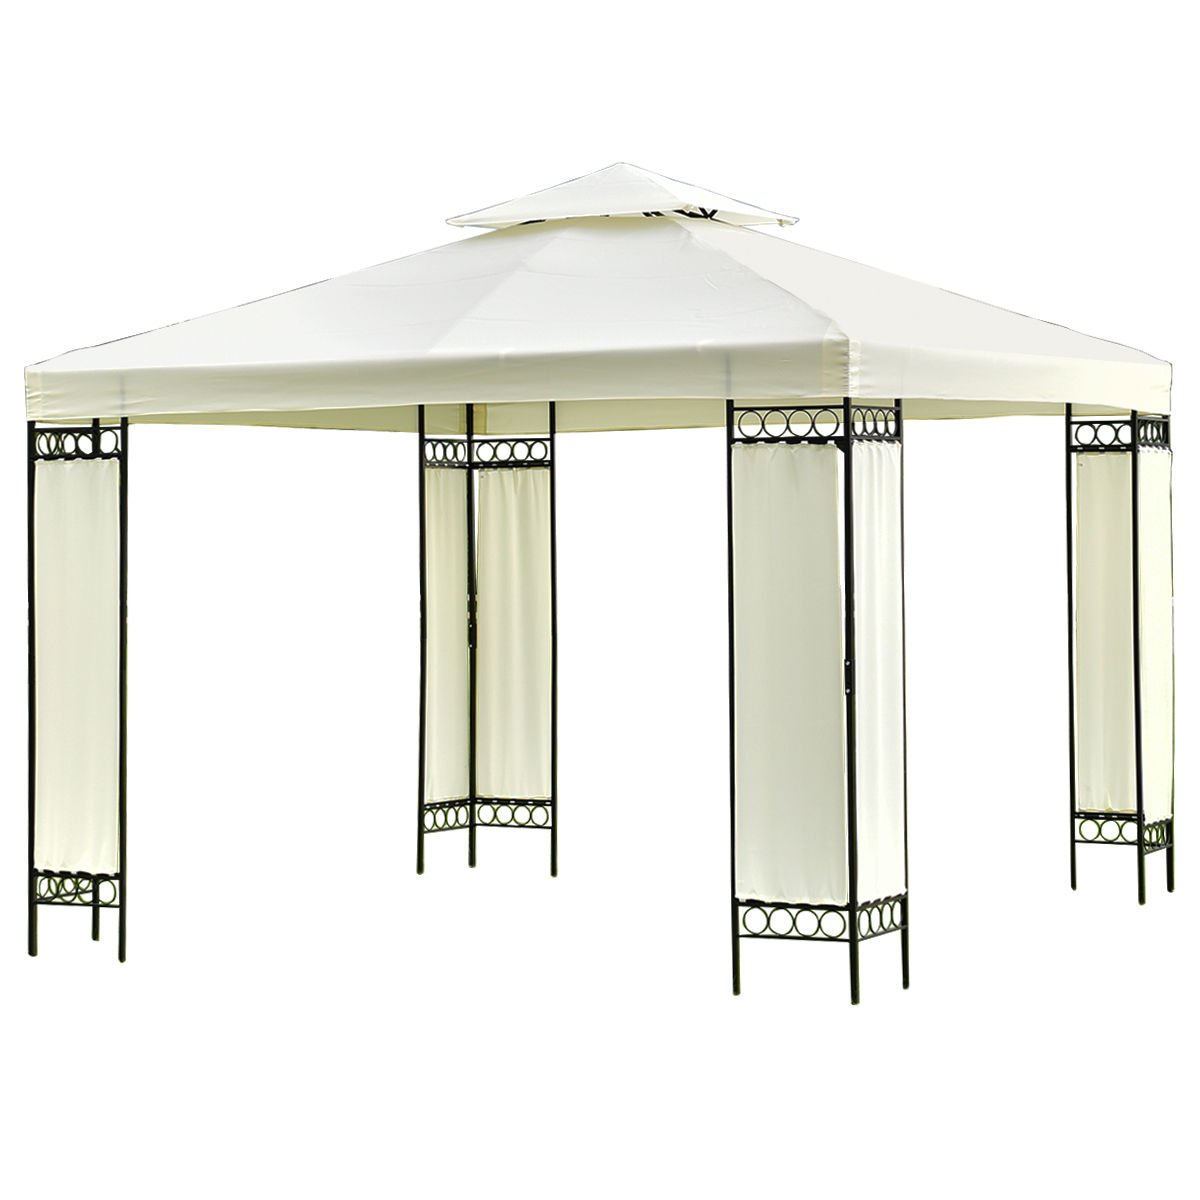 2 Tier 10'x10' Gazebo Canopy Shelter Patio Wedding Party Tent Outdoor Awning New + FREE E-Book